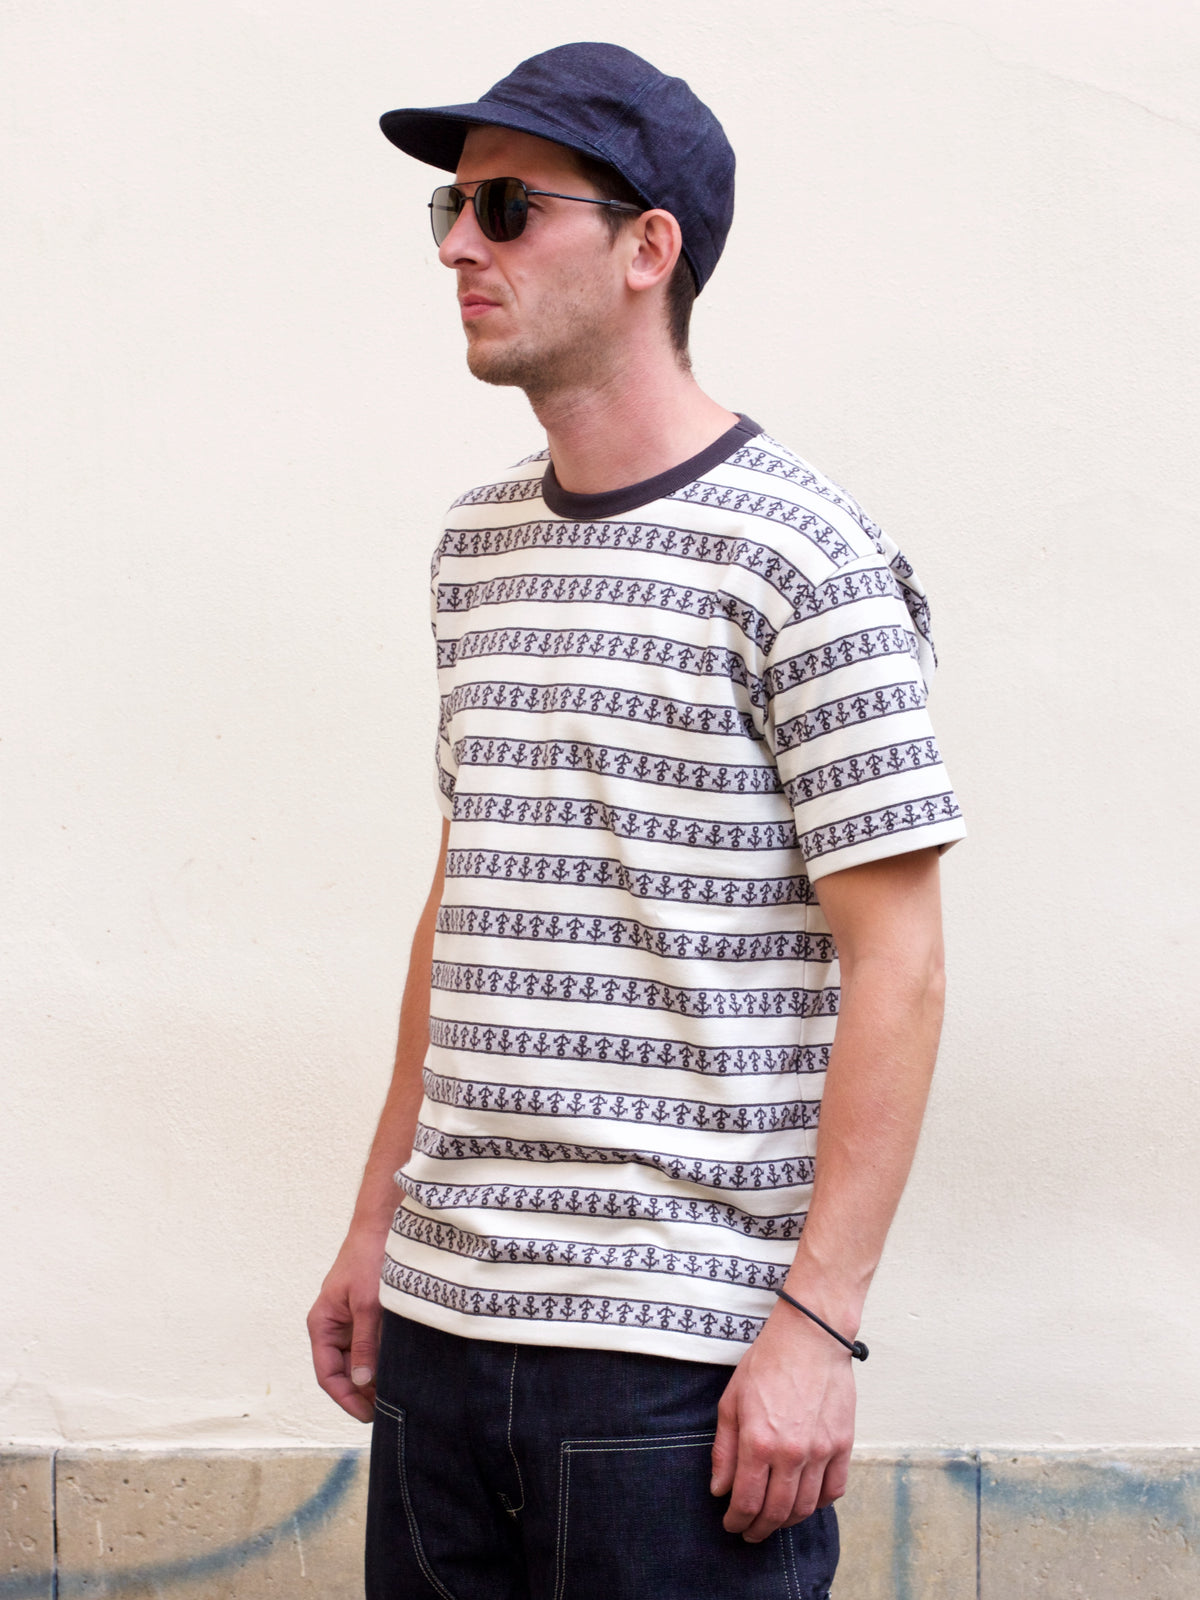 Real McCoy's MC19014 Anchor Jacquard Tee